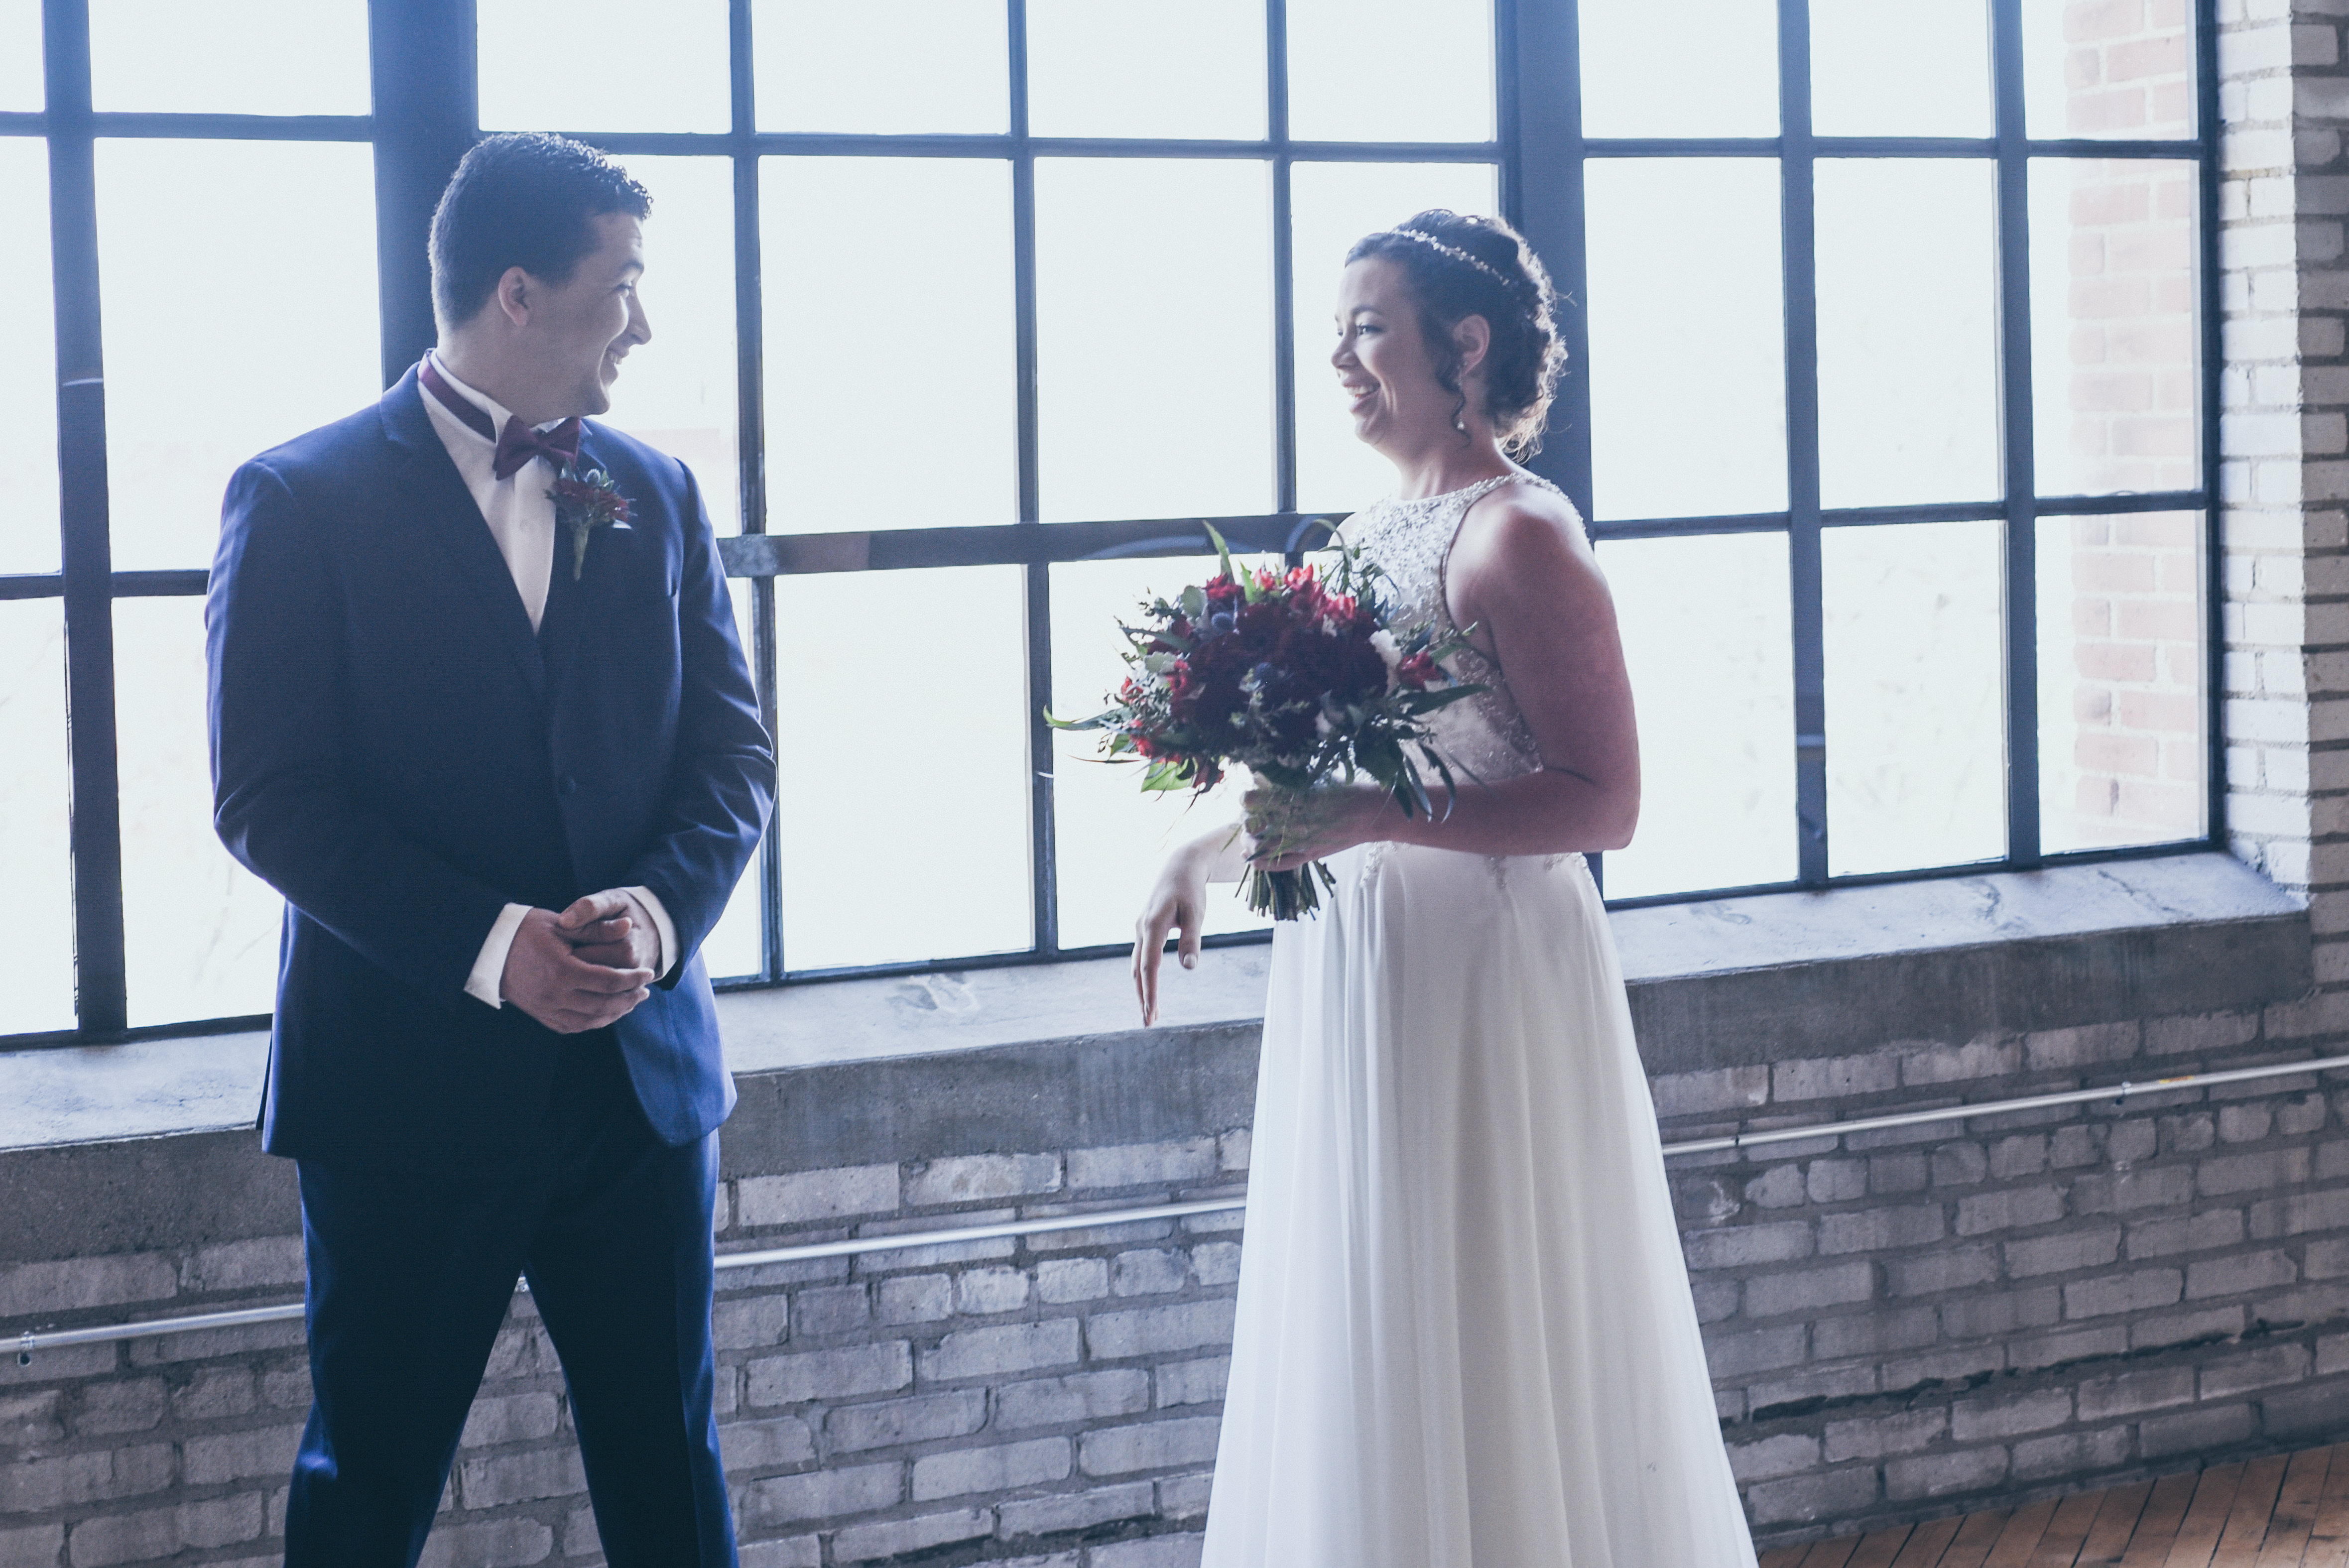 groom seeing bride for first time before wedding ceremony